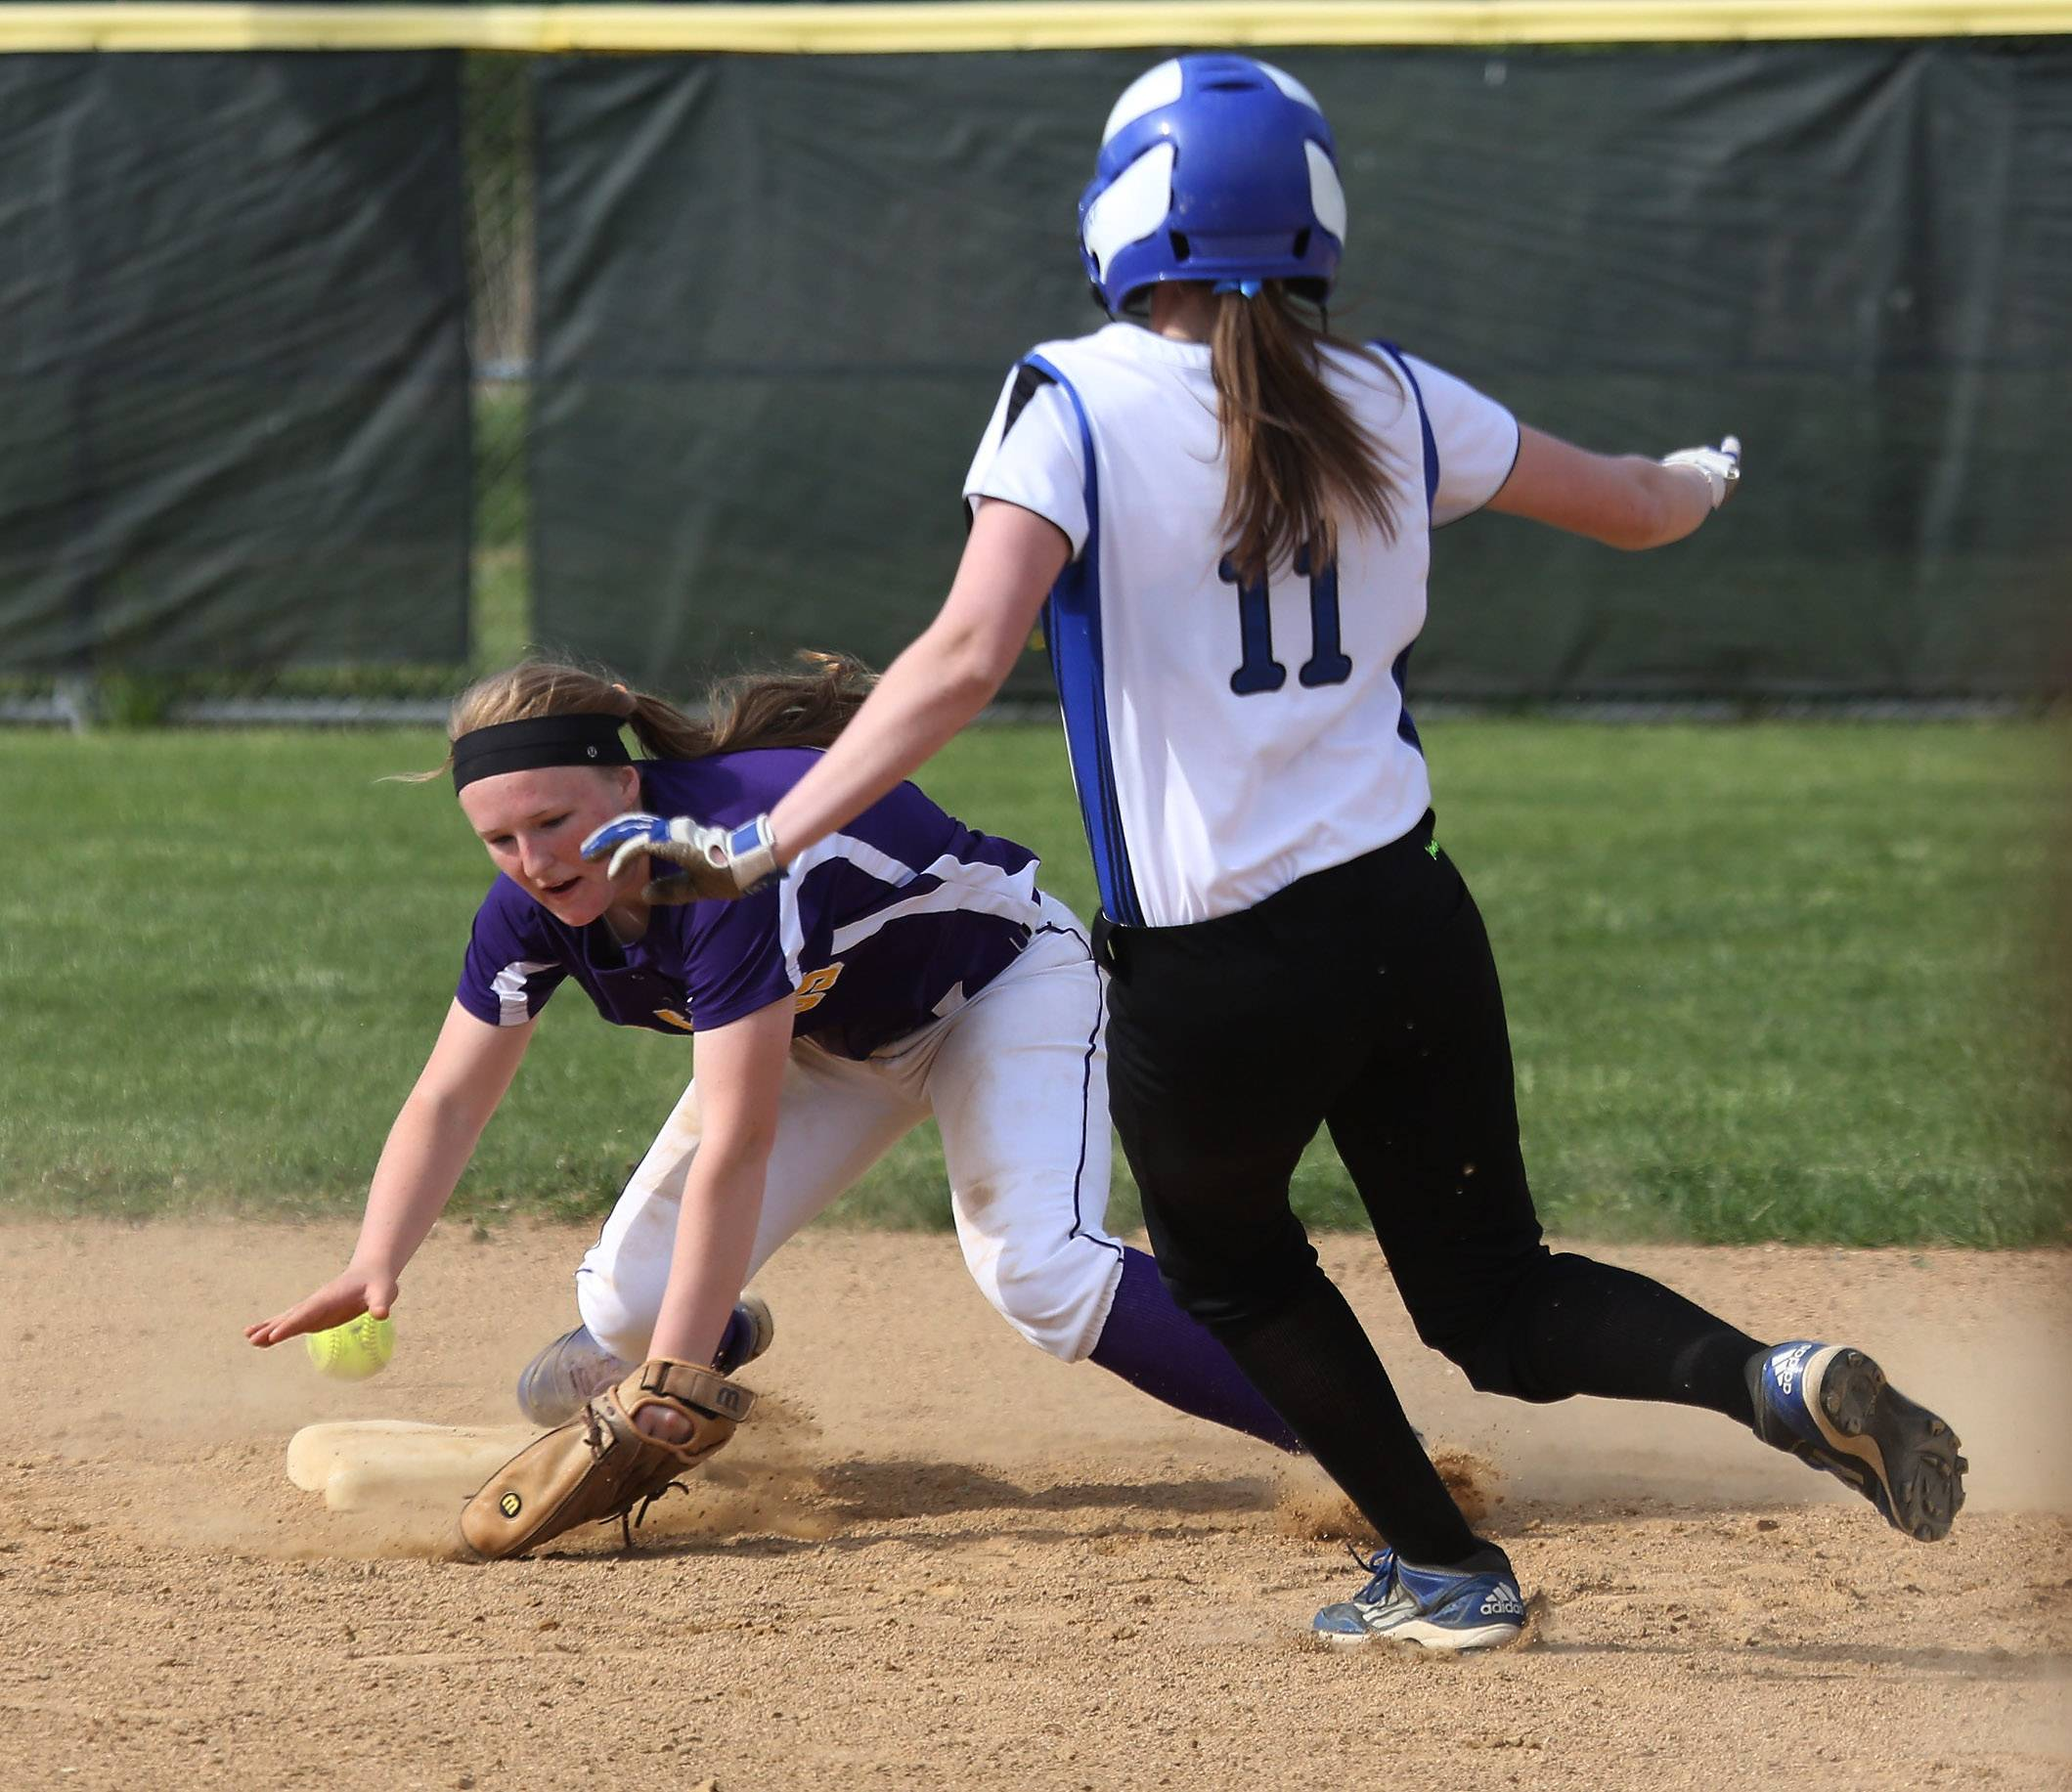 Lake Zurich's Rachel Dawson slides into second after Wauconda shortstop Lauren Nee tries to handle the ball during the second inning of Thursday's NSC championship game at Wauconda.